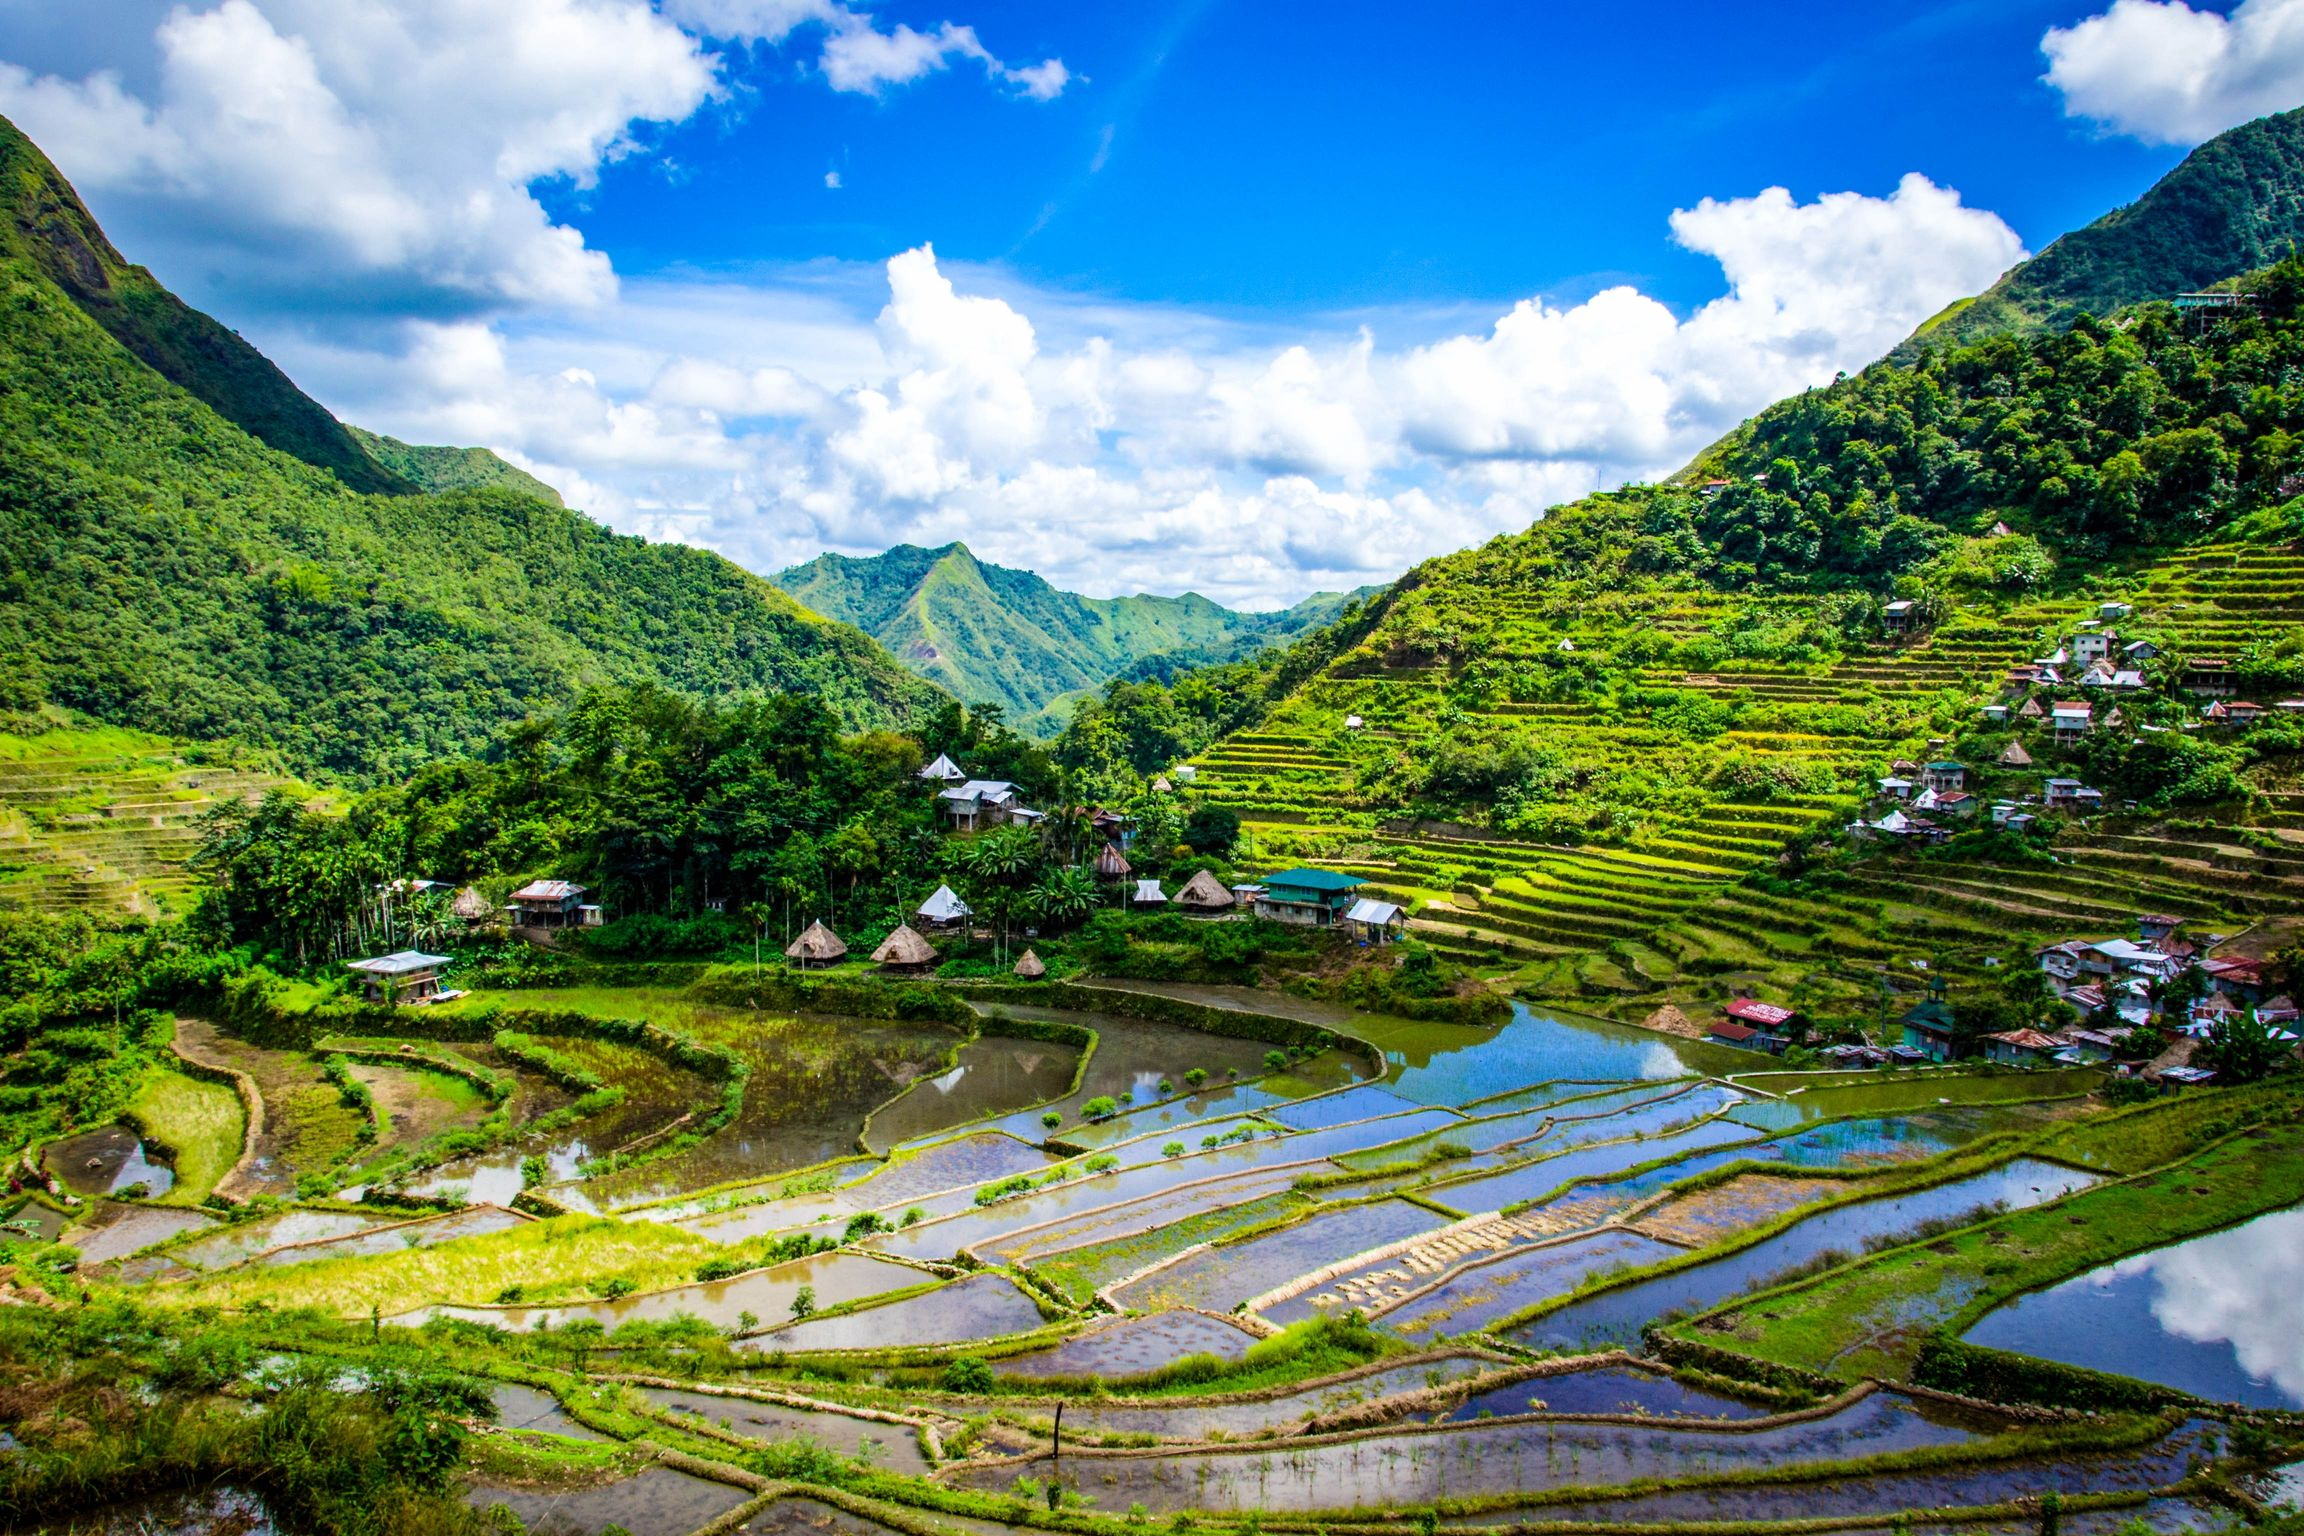 View of terraced paddy fields carved along mountainsides along with small villages in Ifugao, Philippines